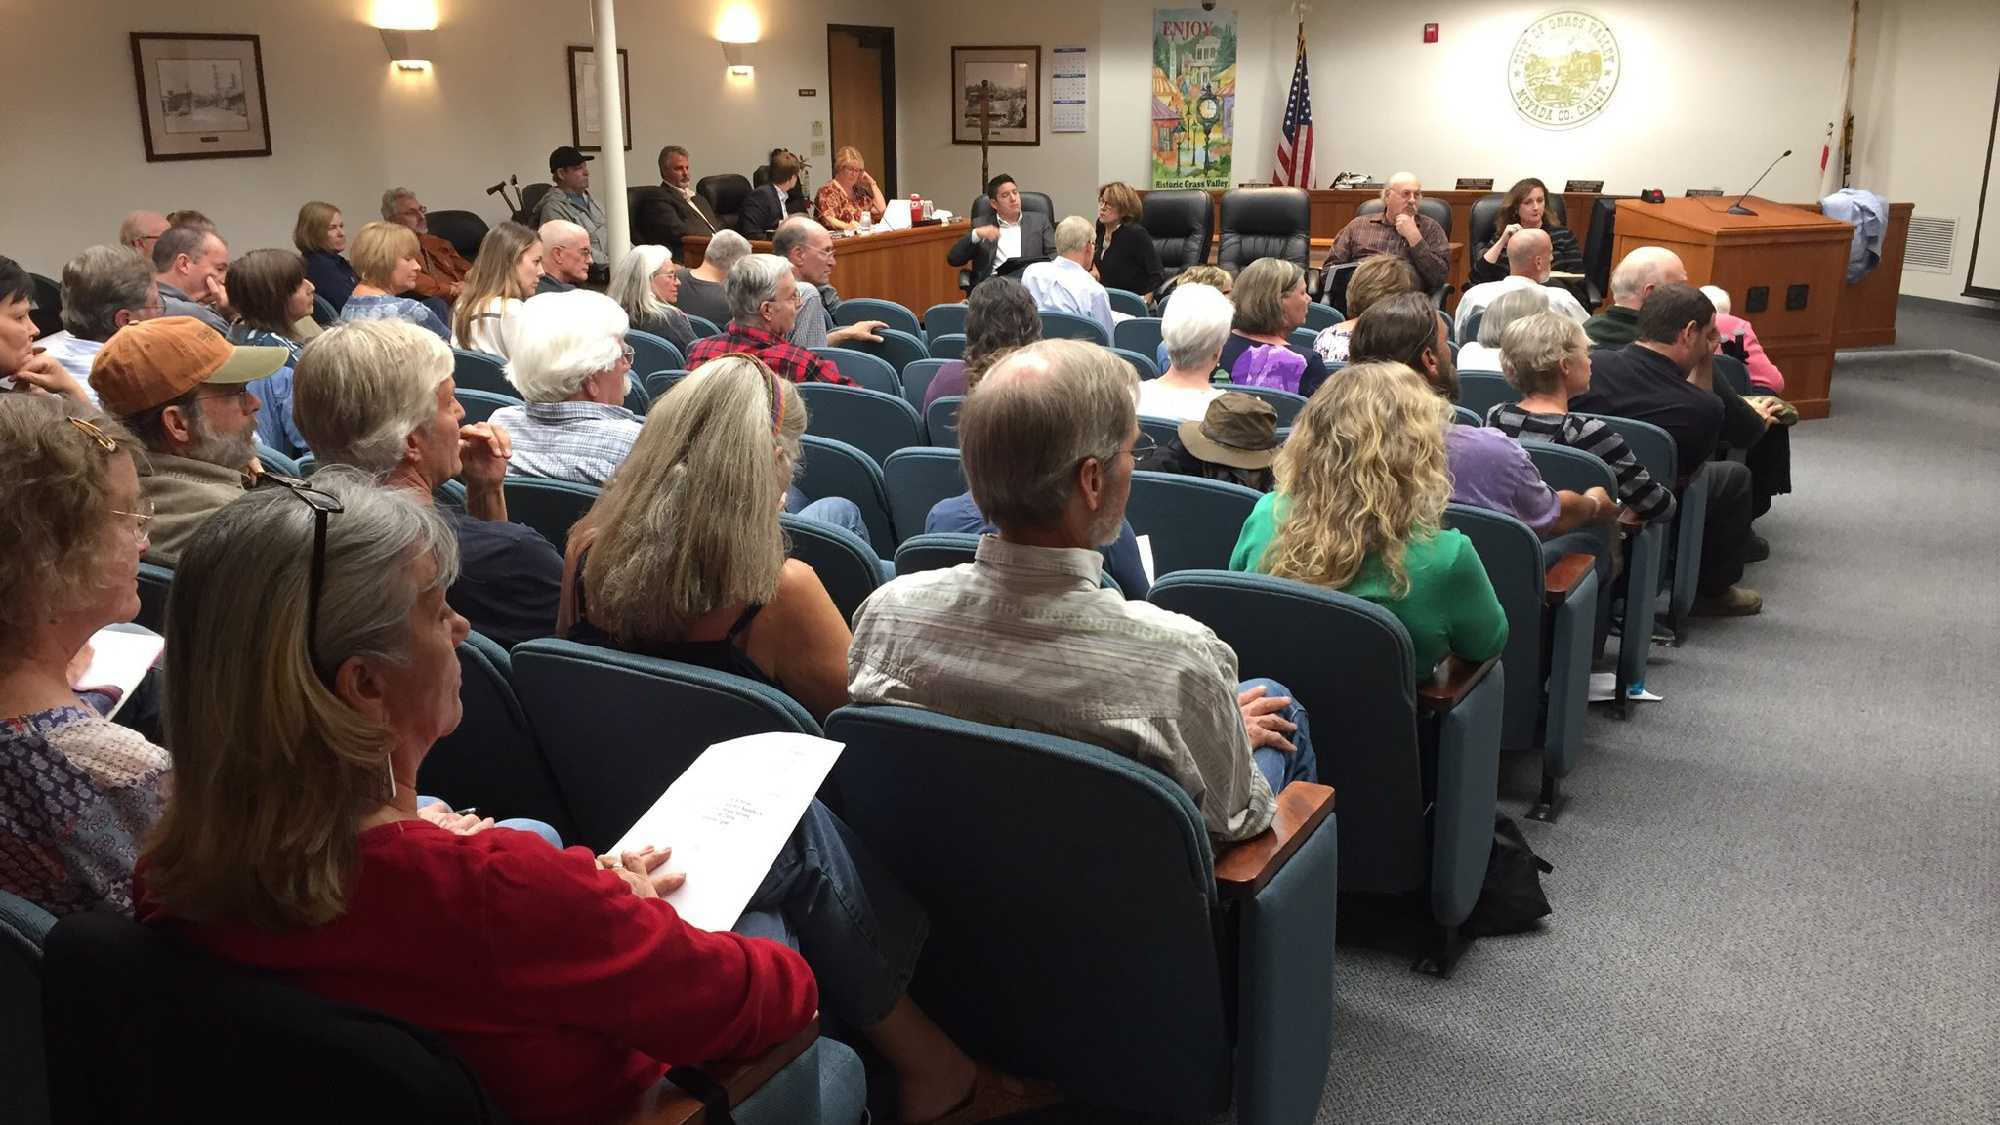 Grass Valley residents attend a town hall meeting on Tuesday, Oct. 11, 2016, about the homeless population.